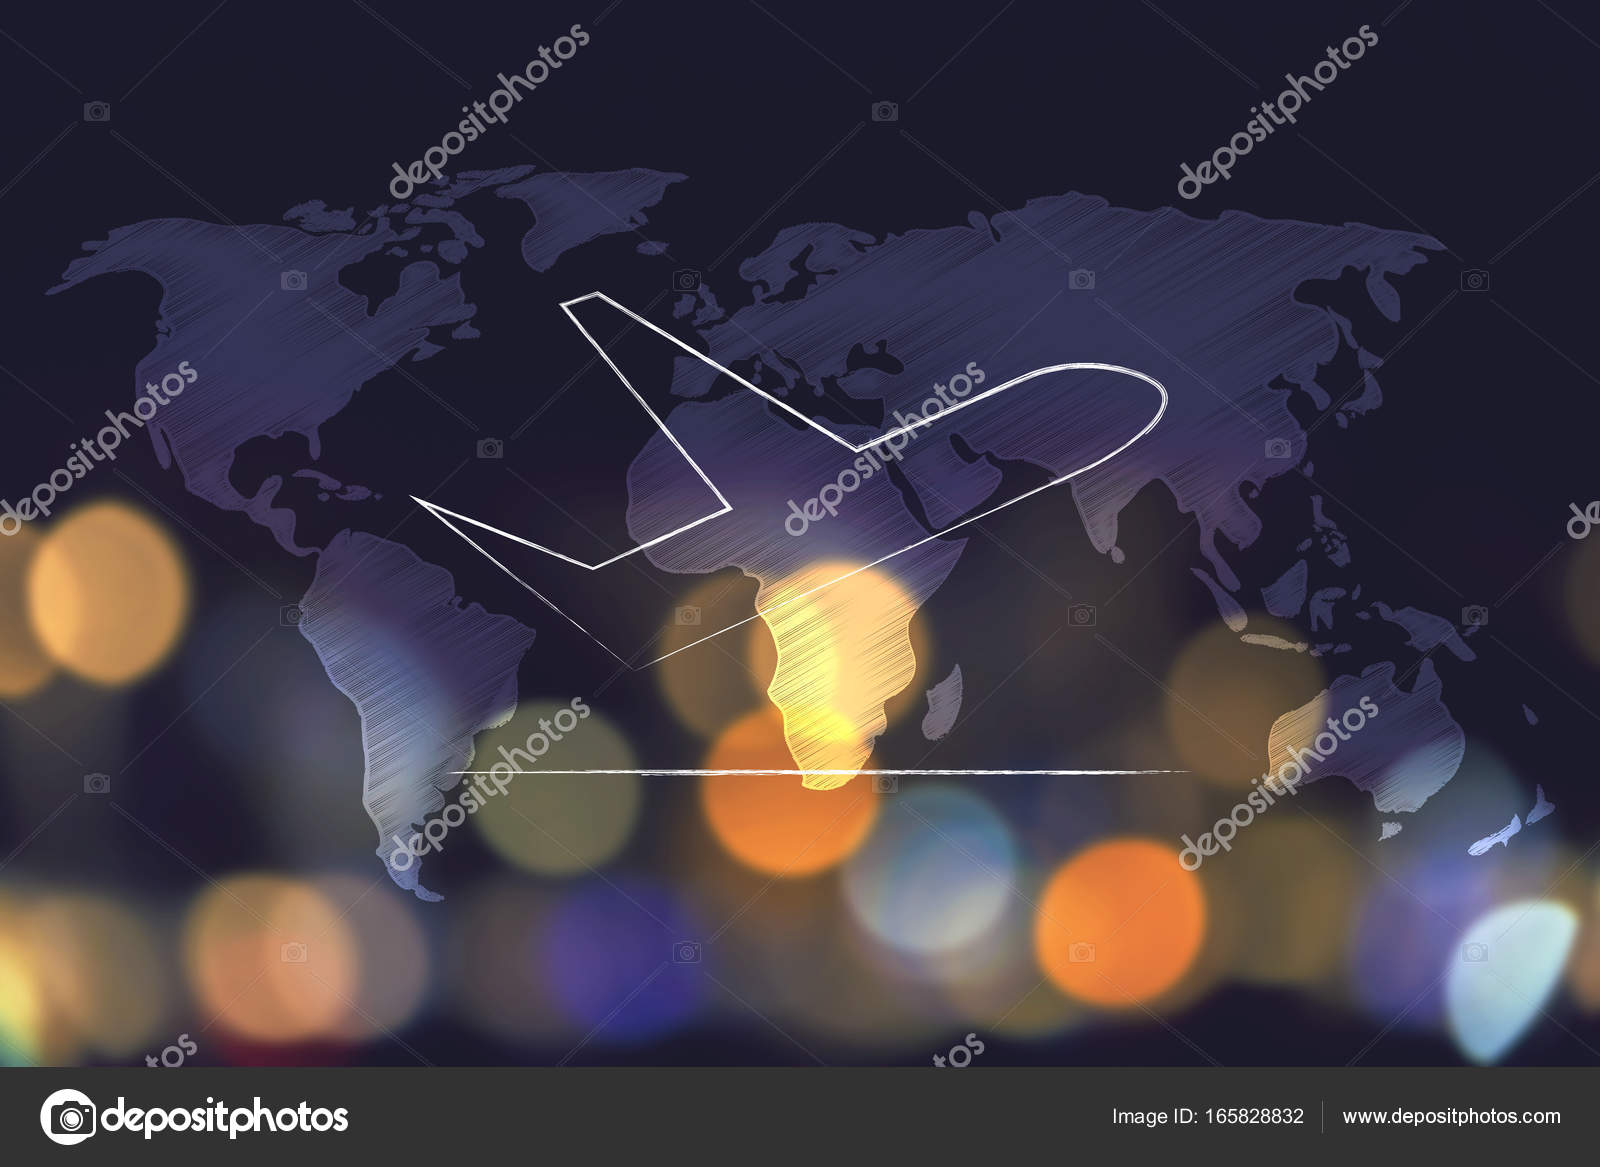 Airplane taking off over world map overlay and nighttime city bo airplane taking off over world map overlay and nighttime city bo stock photo gumiabroncs Images